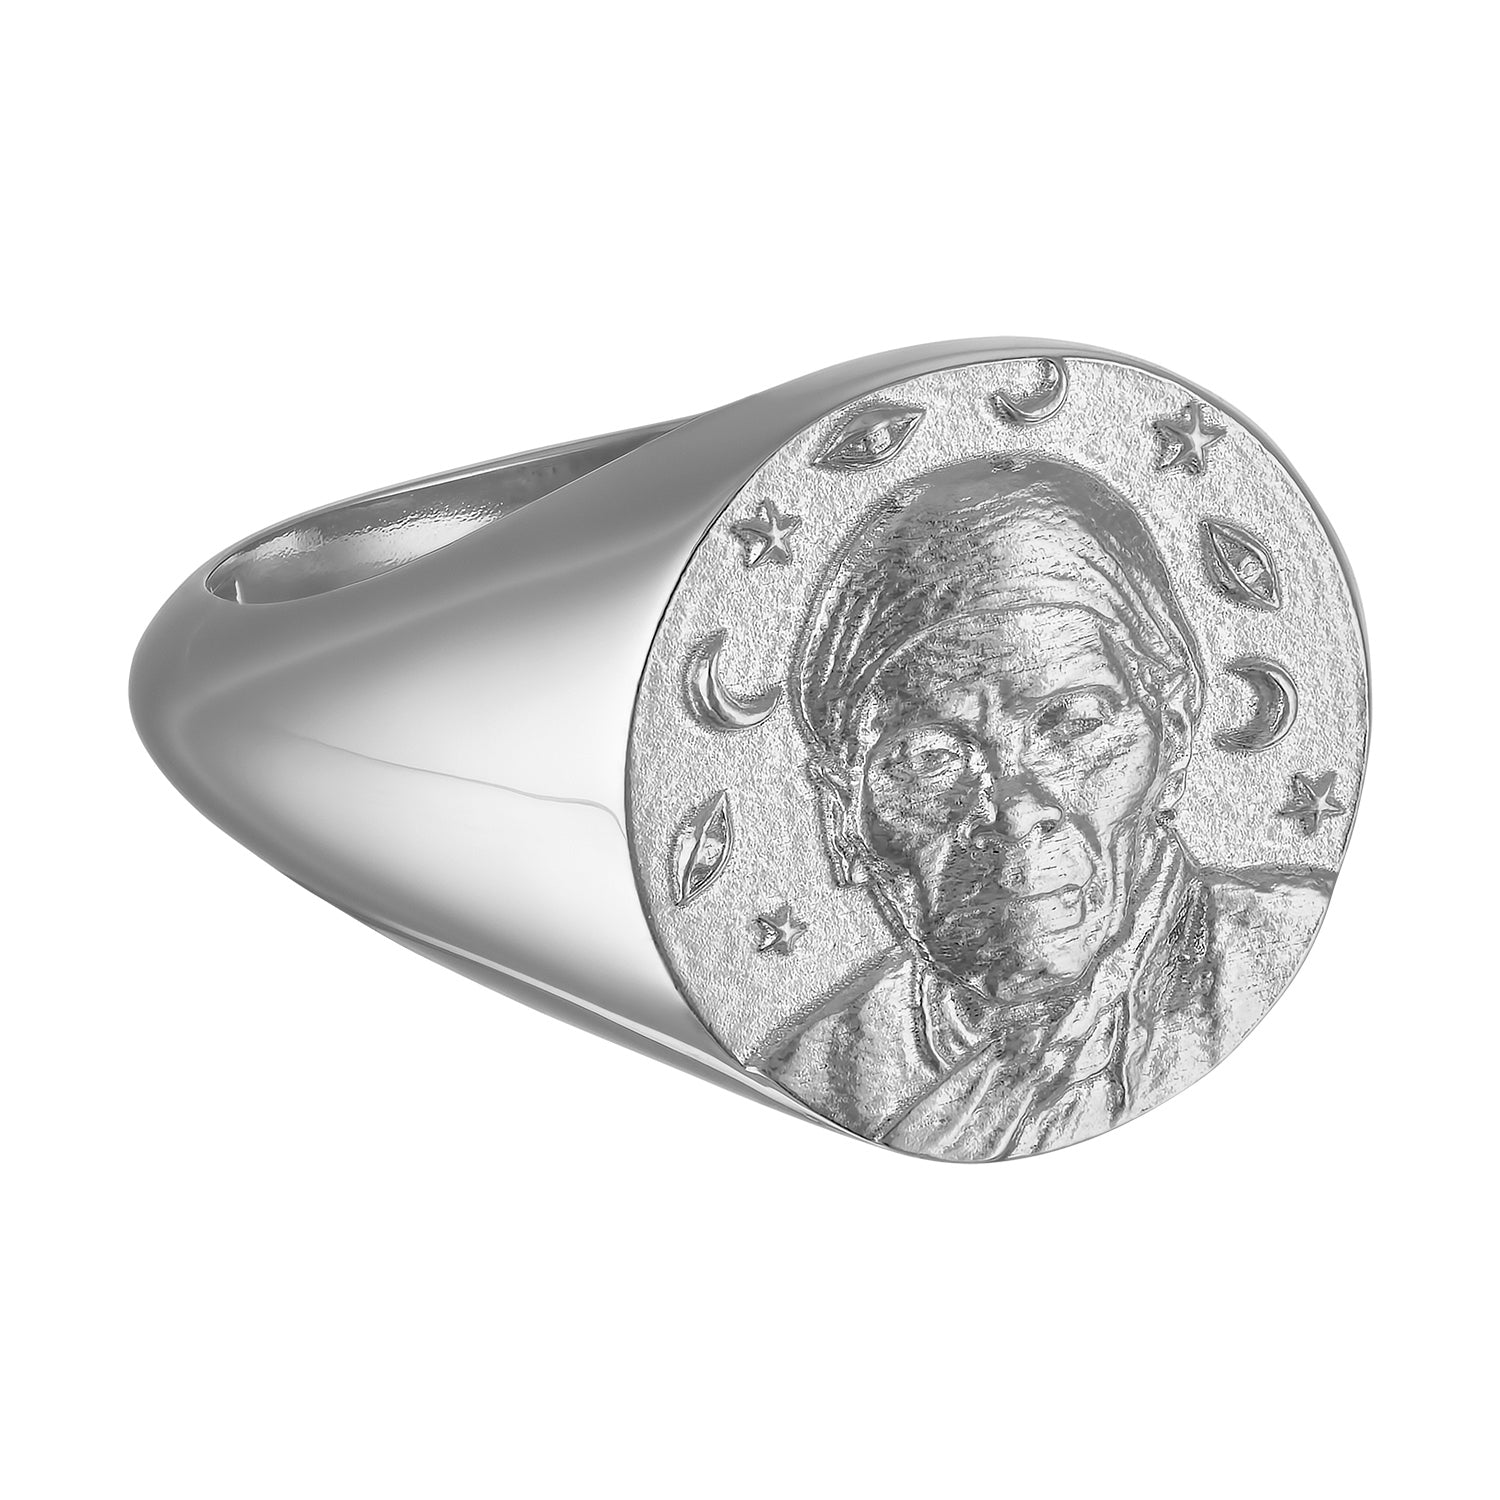 Harriet Tubman Signet Ring